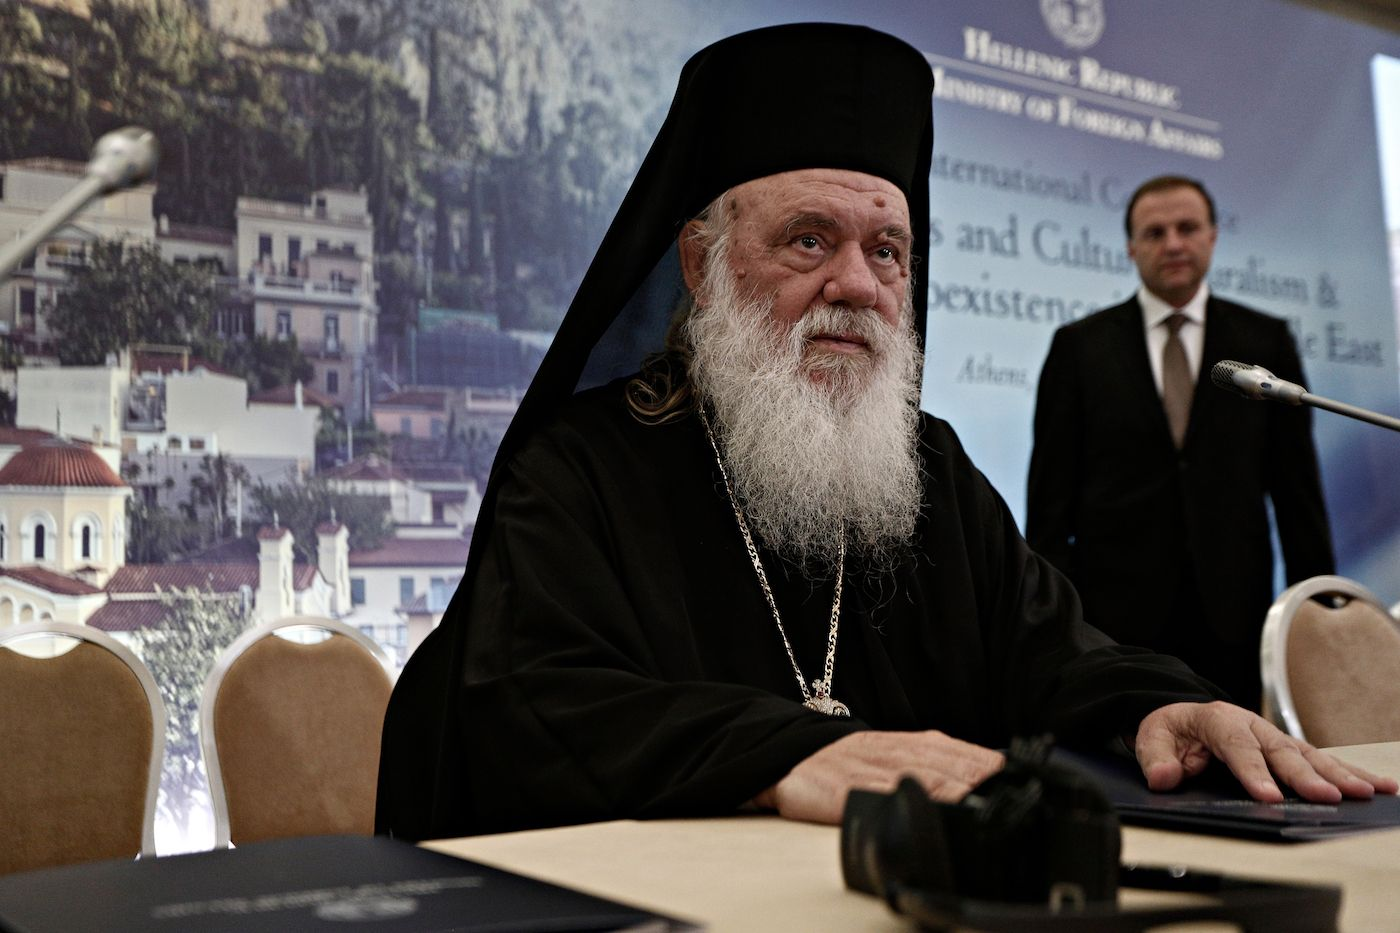 Archbishop of Athens Alleges Islam is Not a Religion but a Political Party